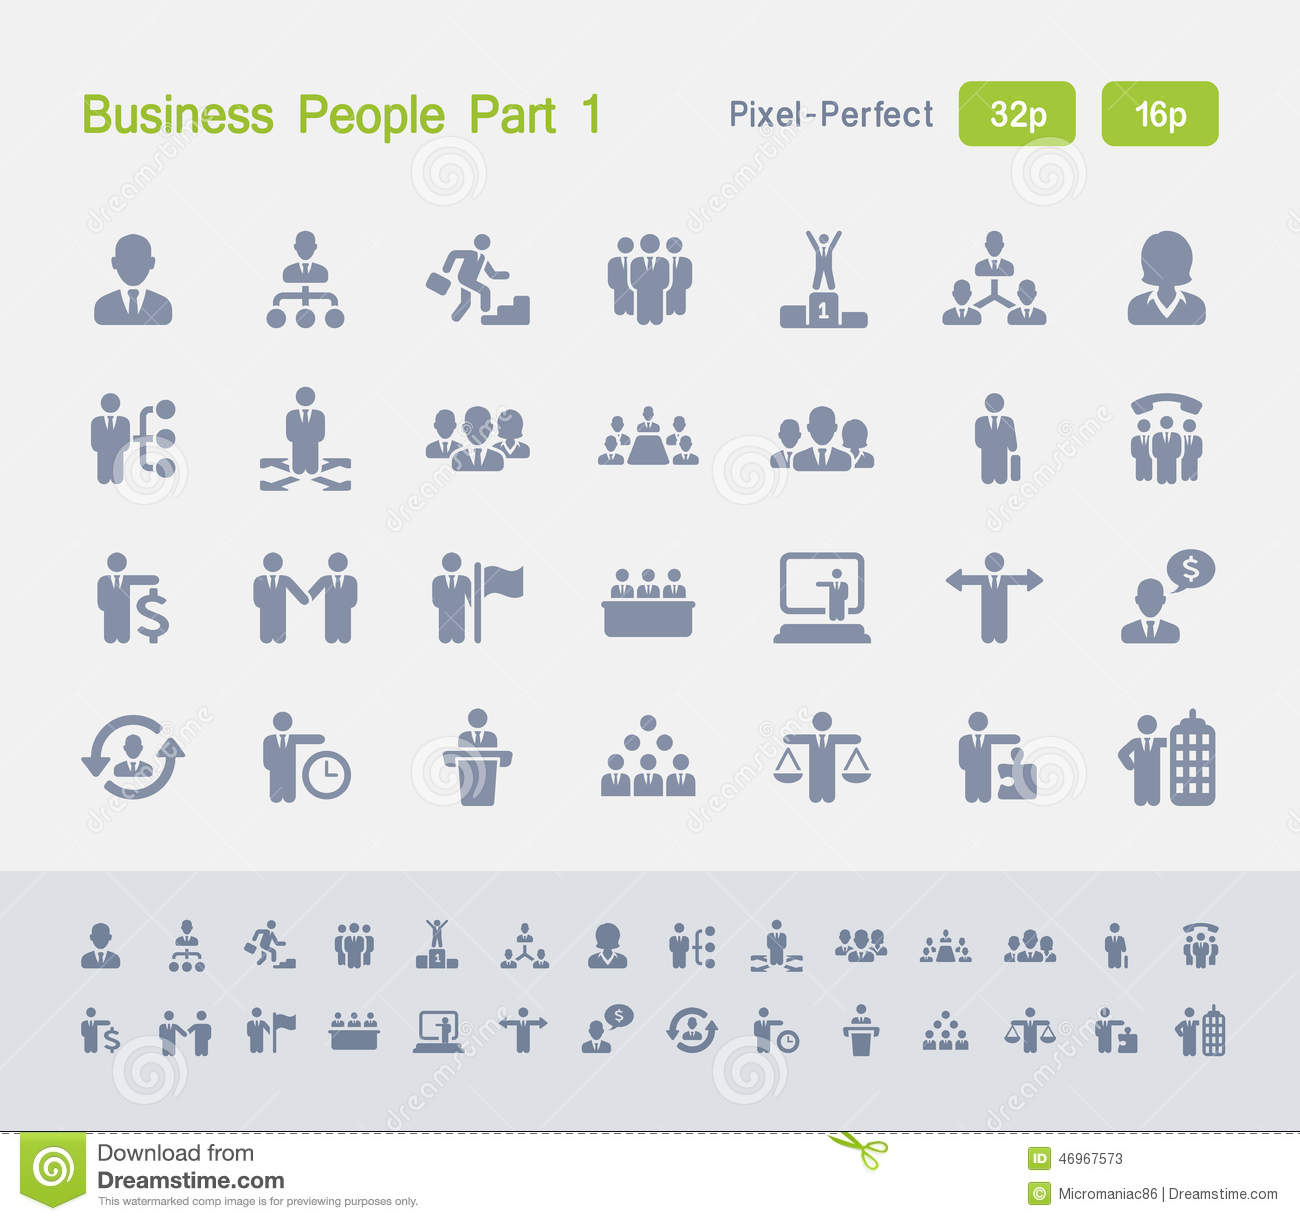 Business People Part 1 | Granite Icons